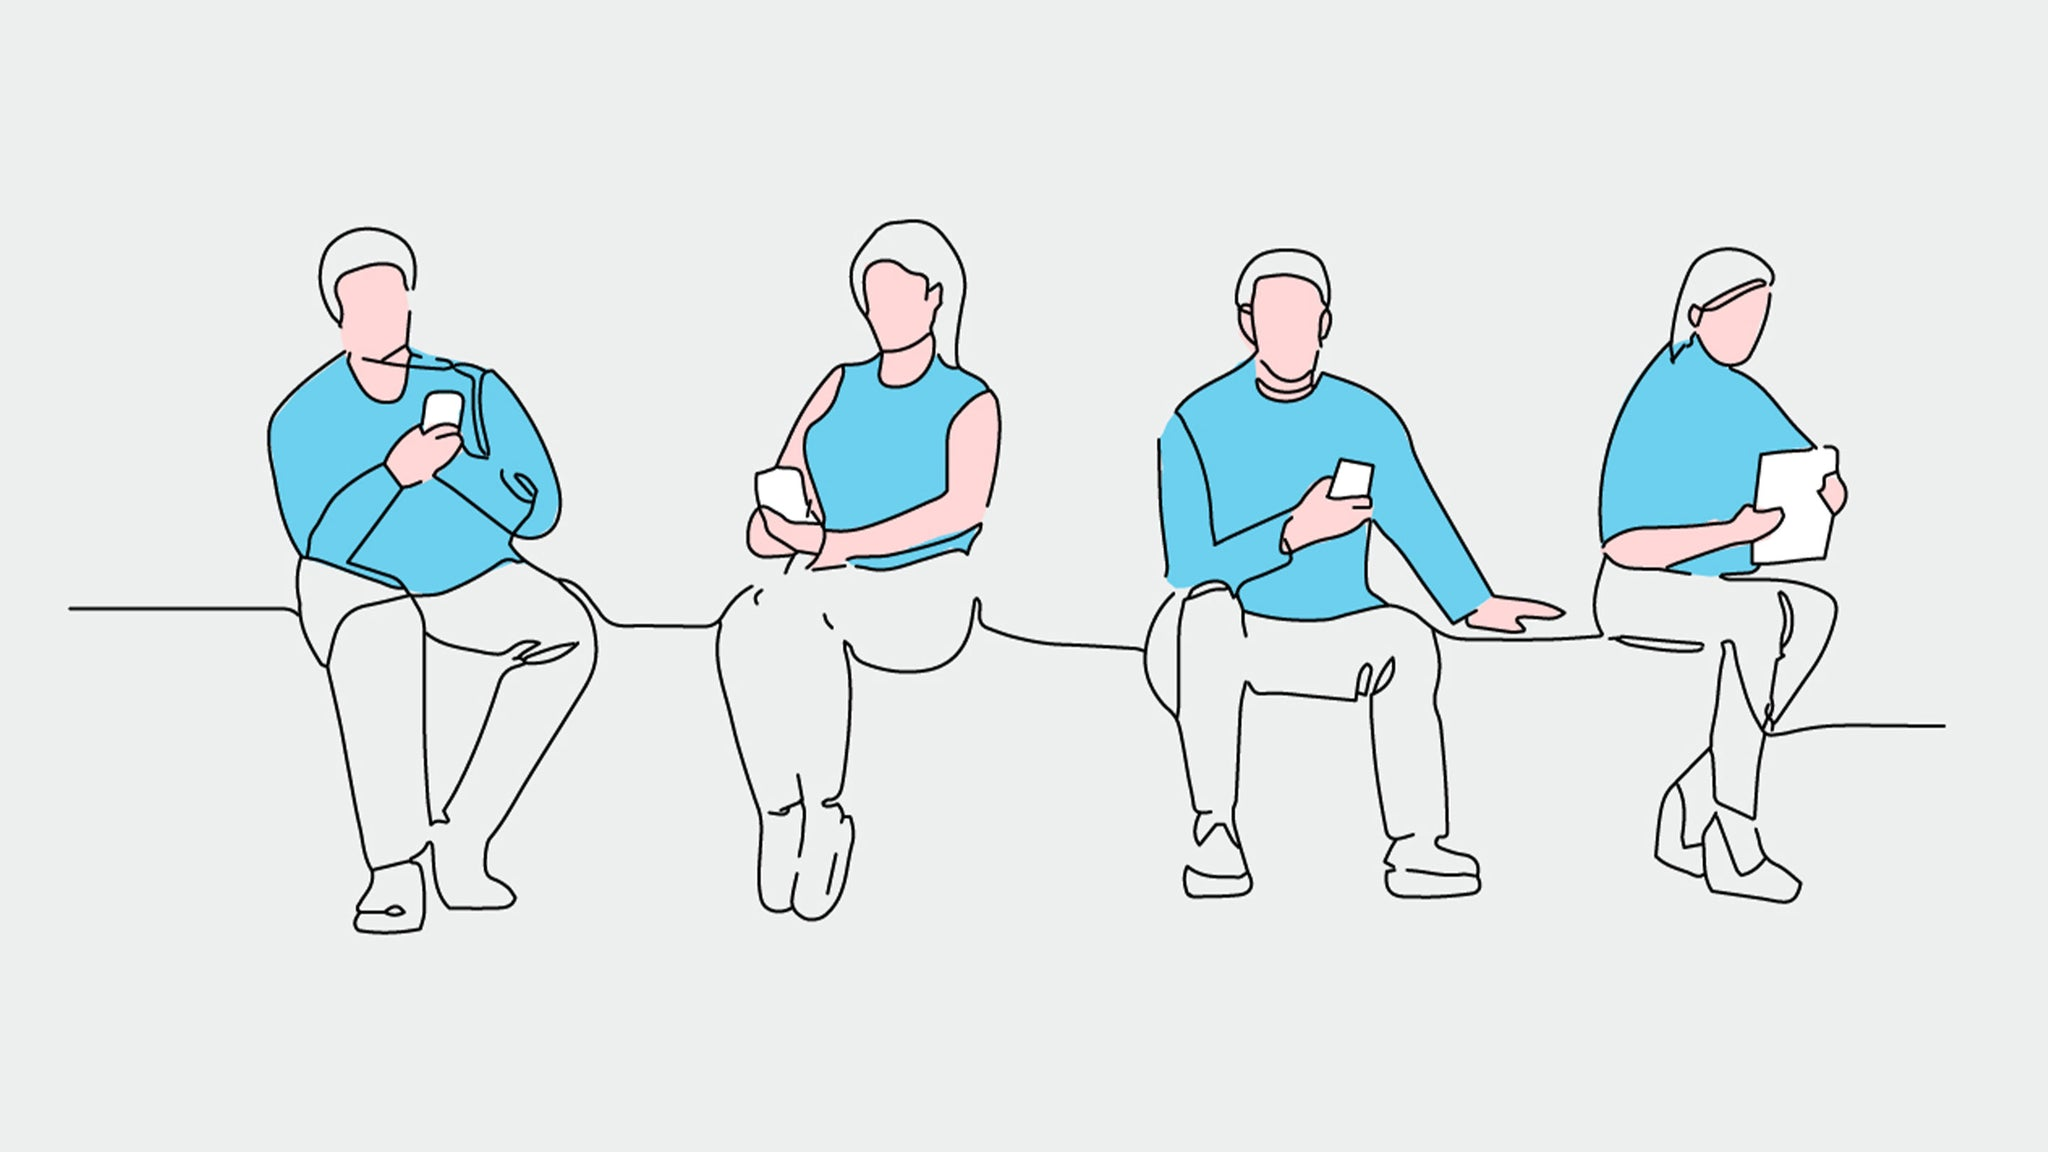 Illustration with single line of people connected to their devices.